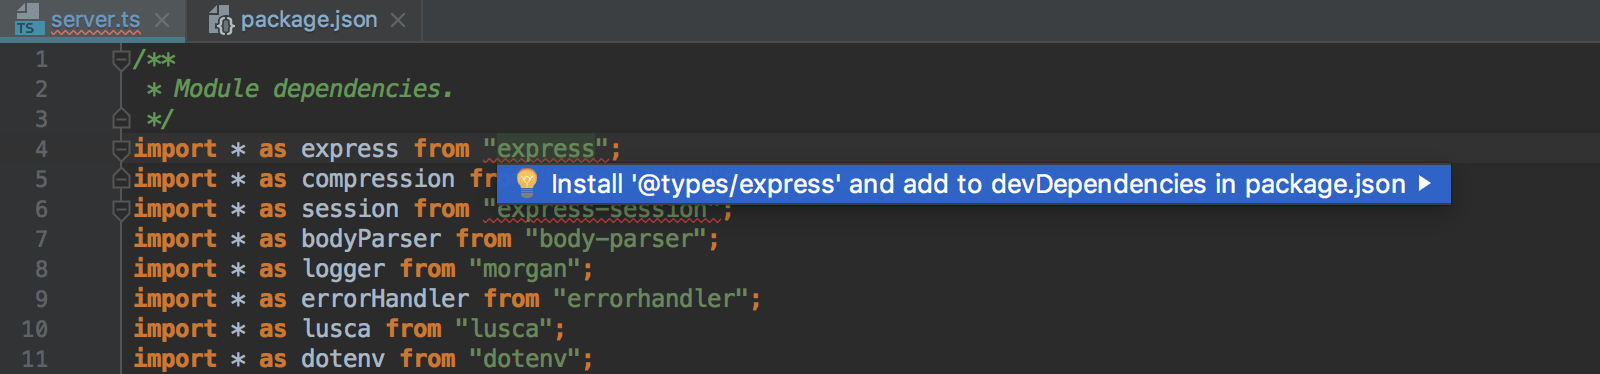 ws_ts_add_types.png